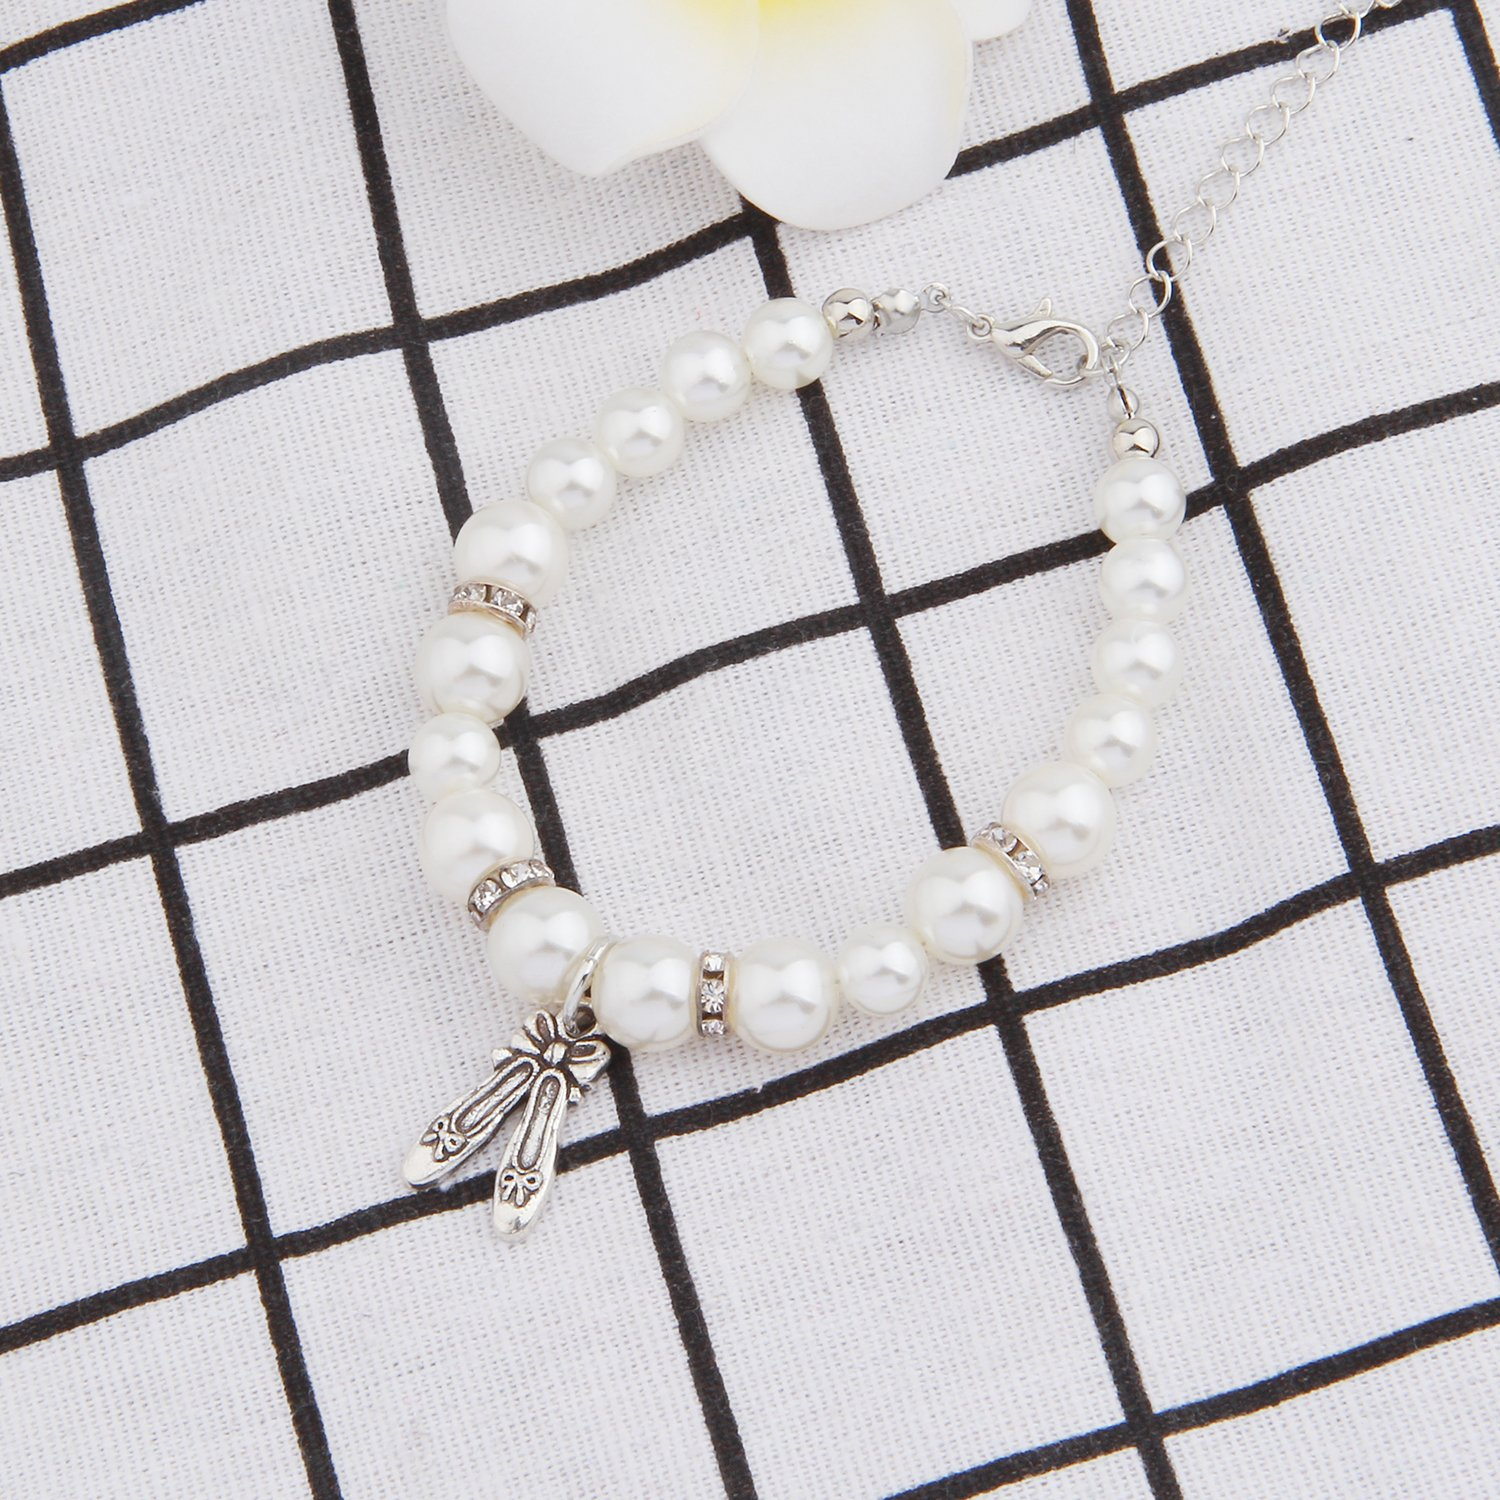 ENSIANTH Dance Lover Gift Pearl Bracelet Girl Dance Jewelry With Dancing Shose Dance Recital Gift